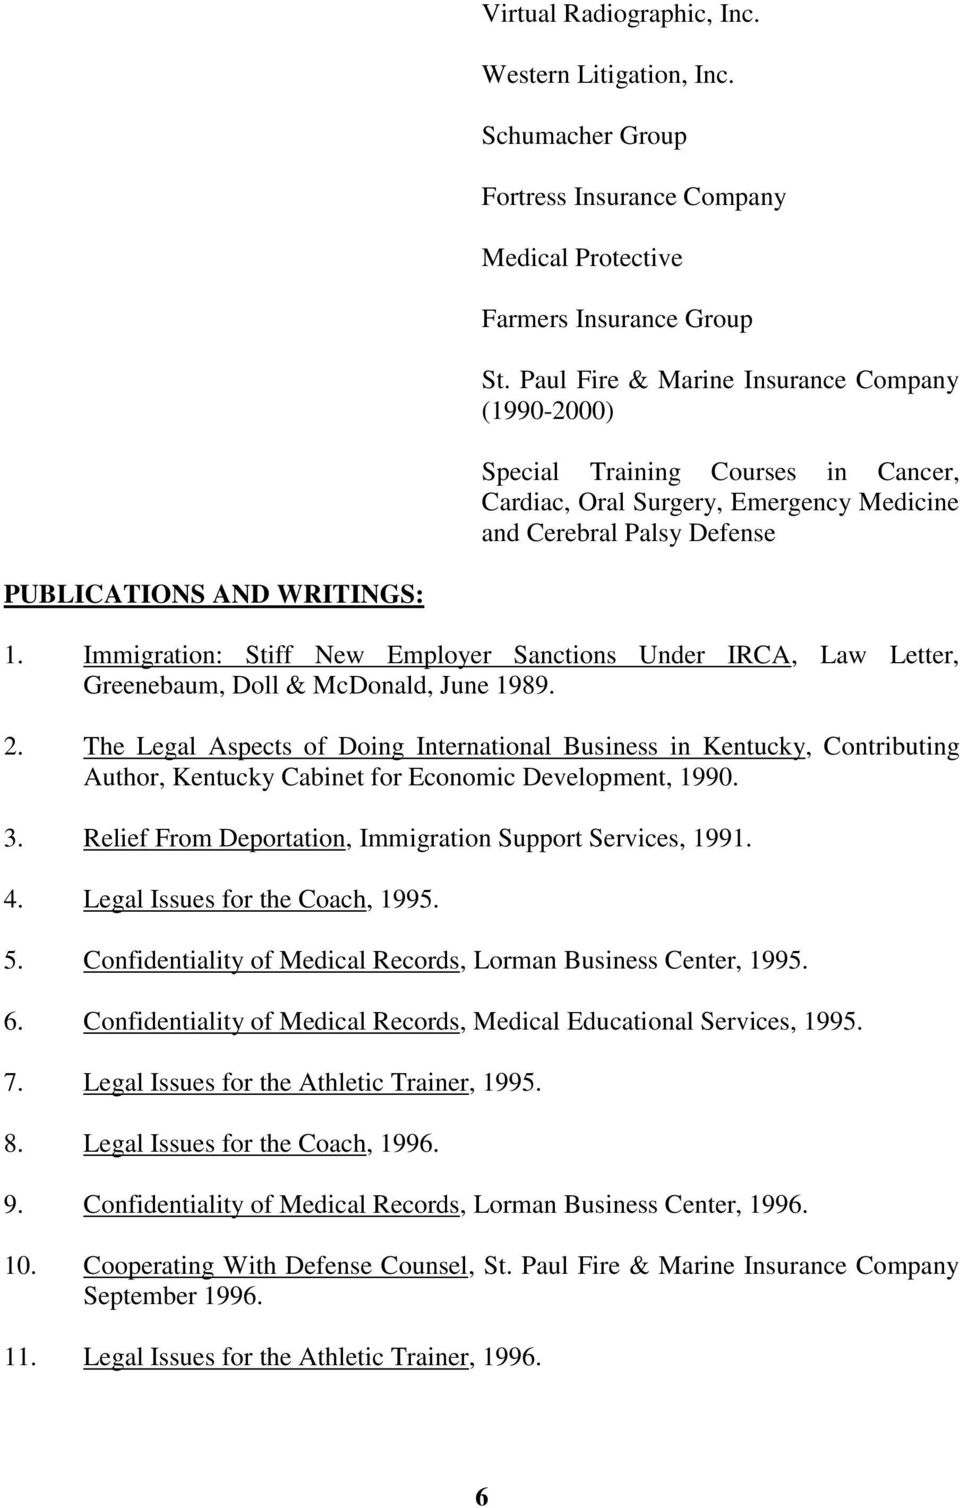 Immigration: Stiff New Employer Sanctions Under IRCA, Law Letter, Greenebaum, Doll & McDonald, June 1989. 2.